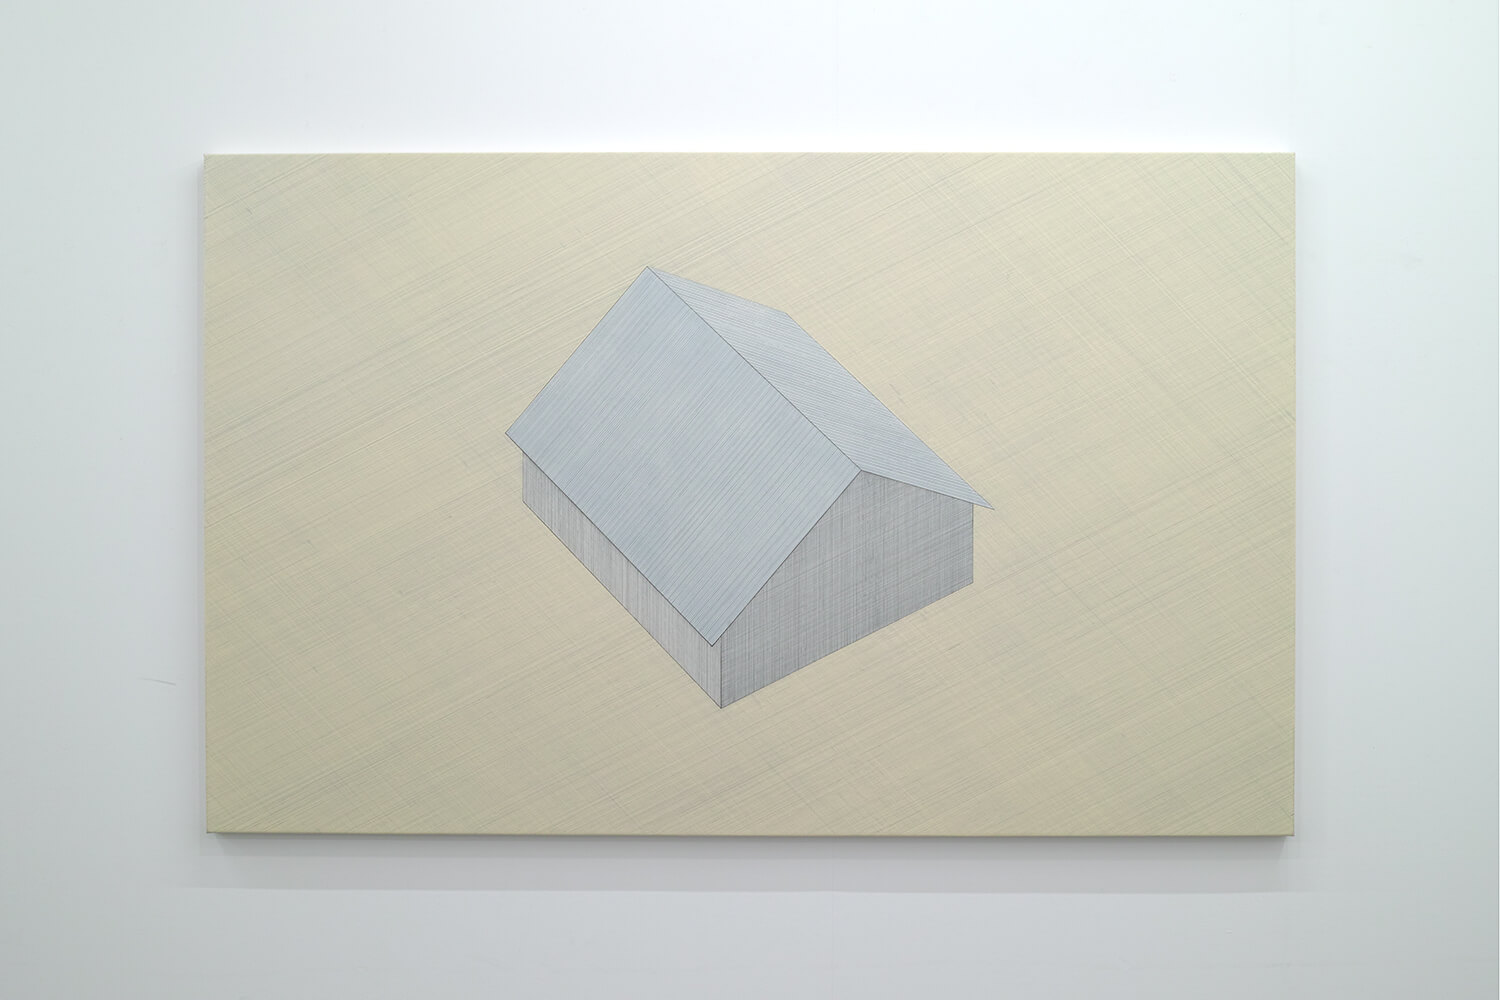 <strong>家#16</strong><br>oil on canvas, 136 x 210 cm, 2011